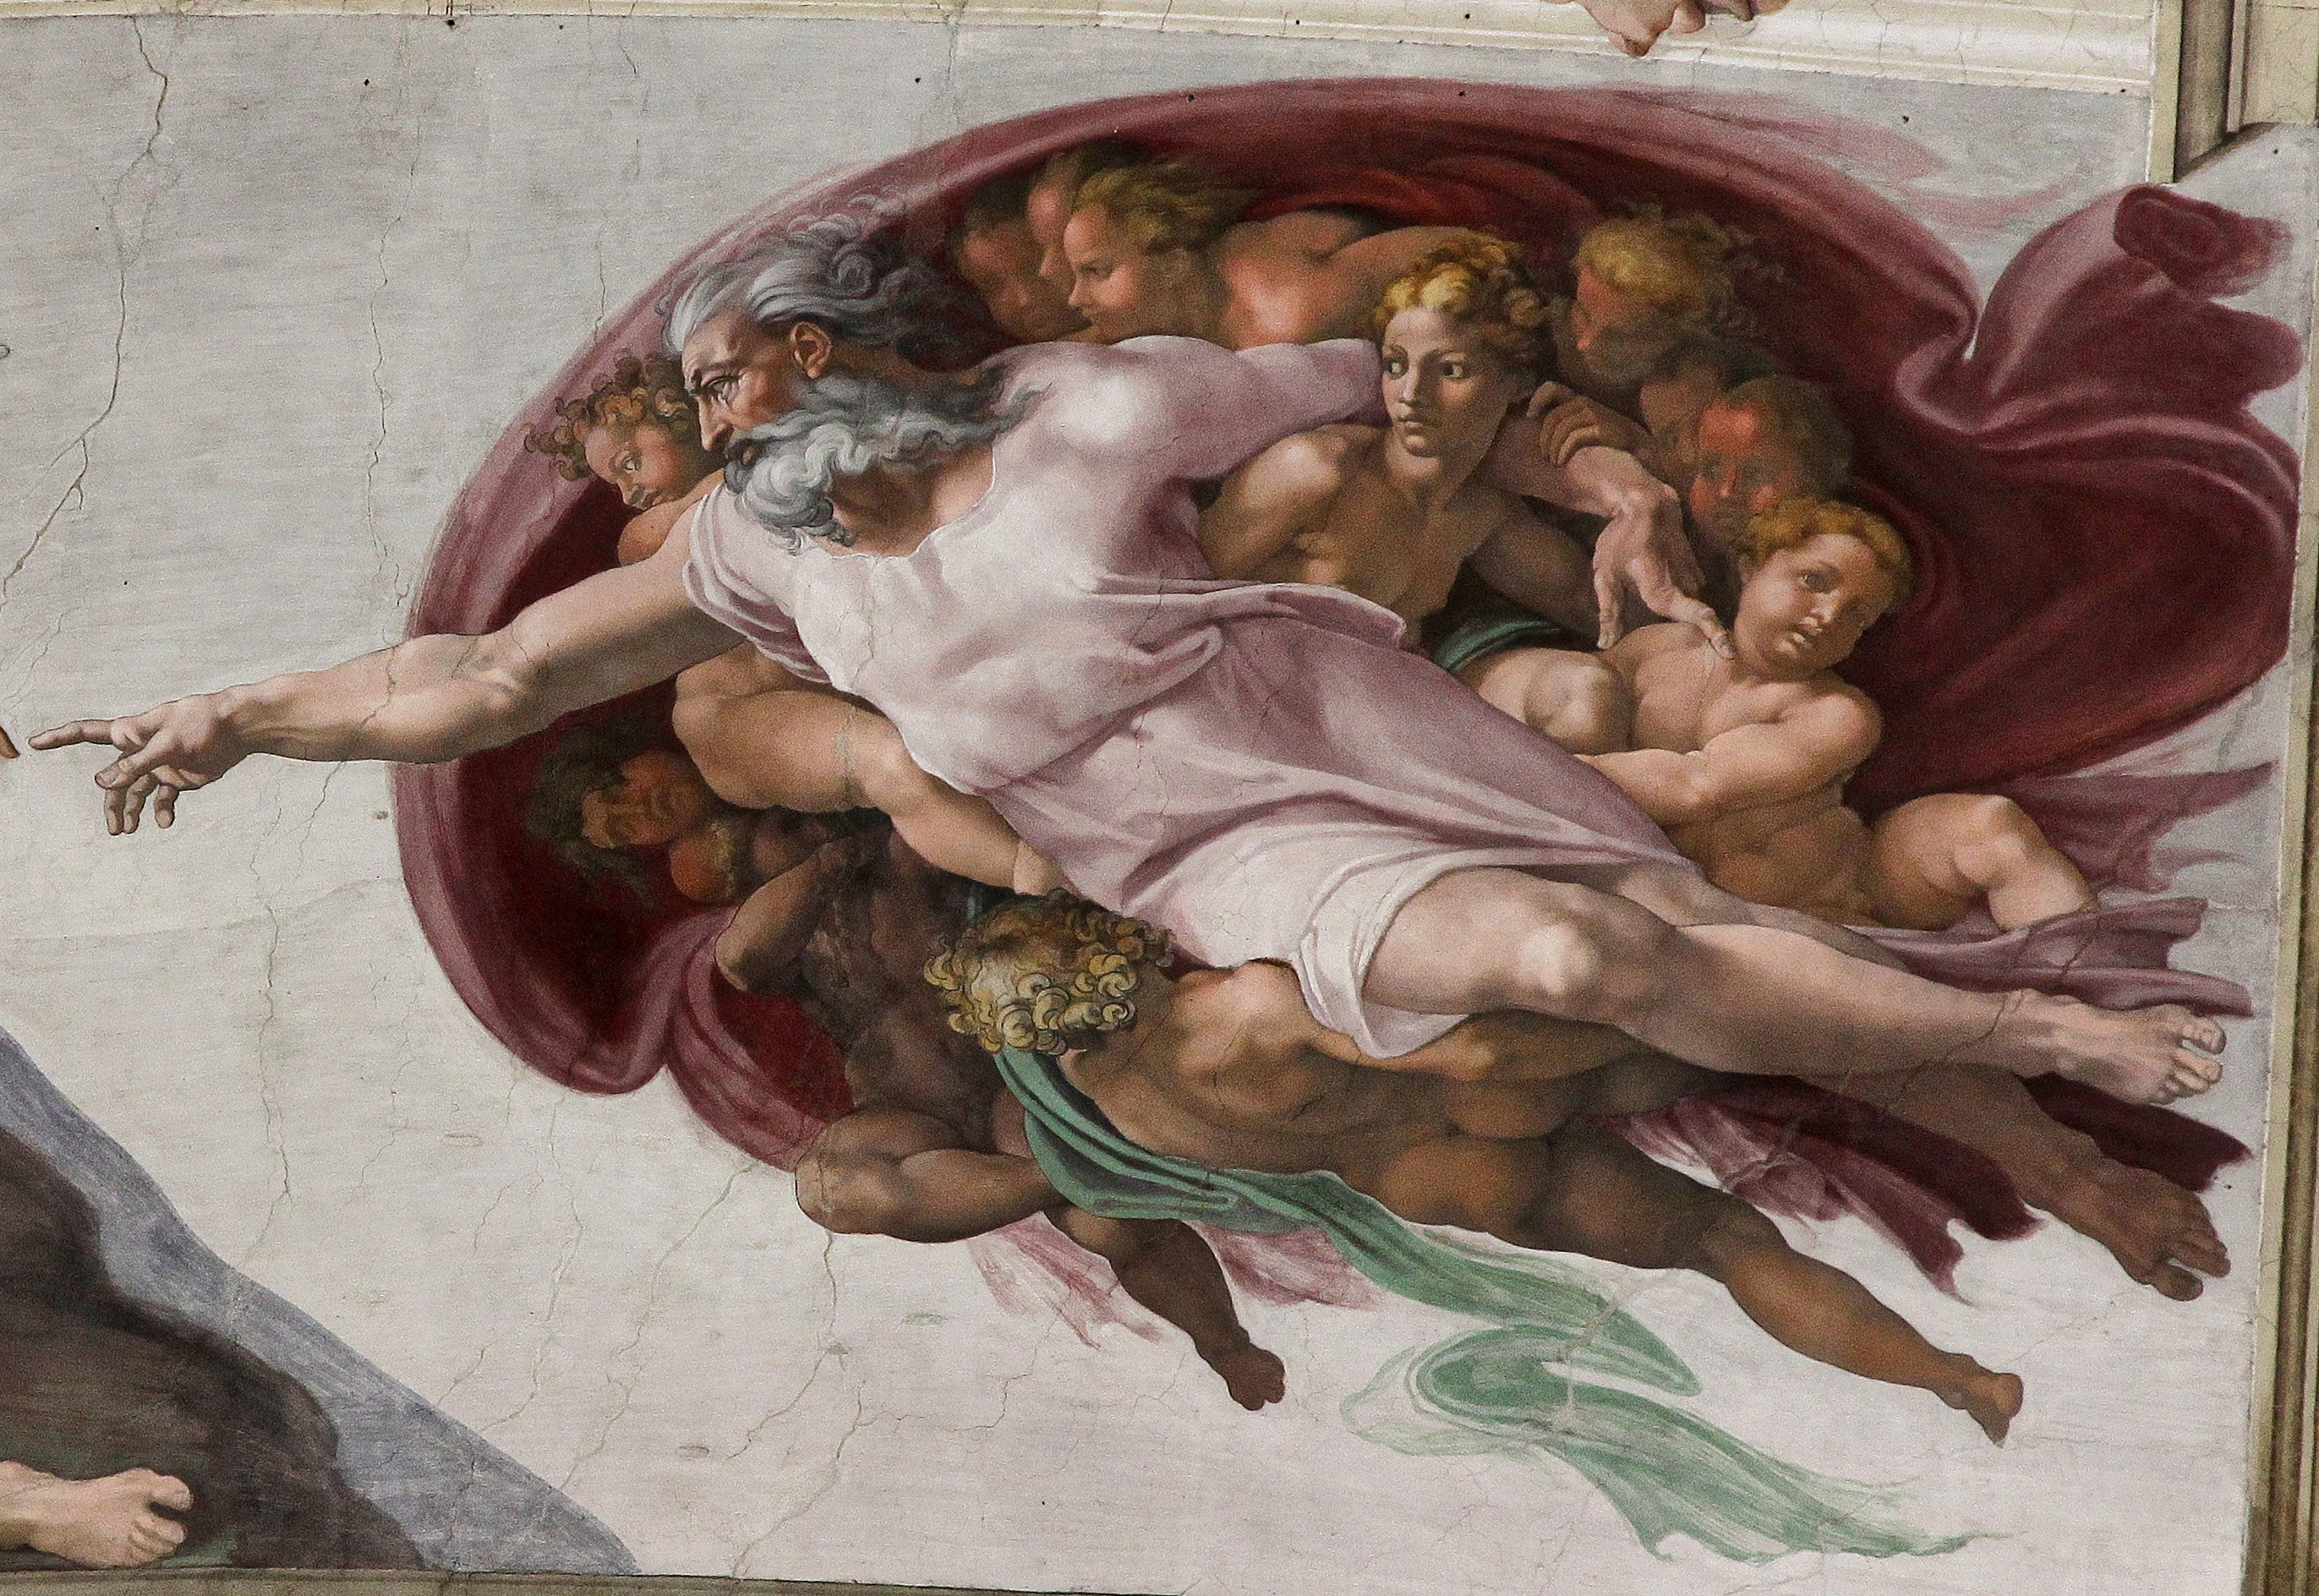 leonardo da vinci and the sistine chapel history essay Michelangelo and leonardo da vinci courtesy of wwwmichelangeloorg: michelangelo when pope julius ii handed him the commission for the sistine chapel.